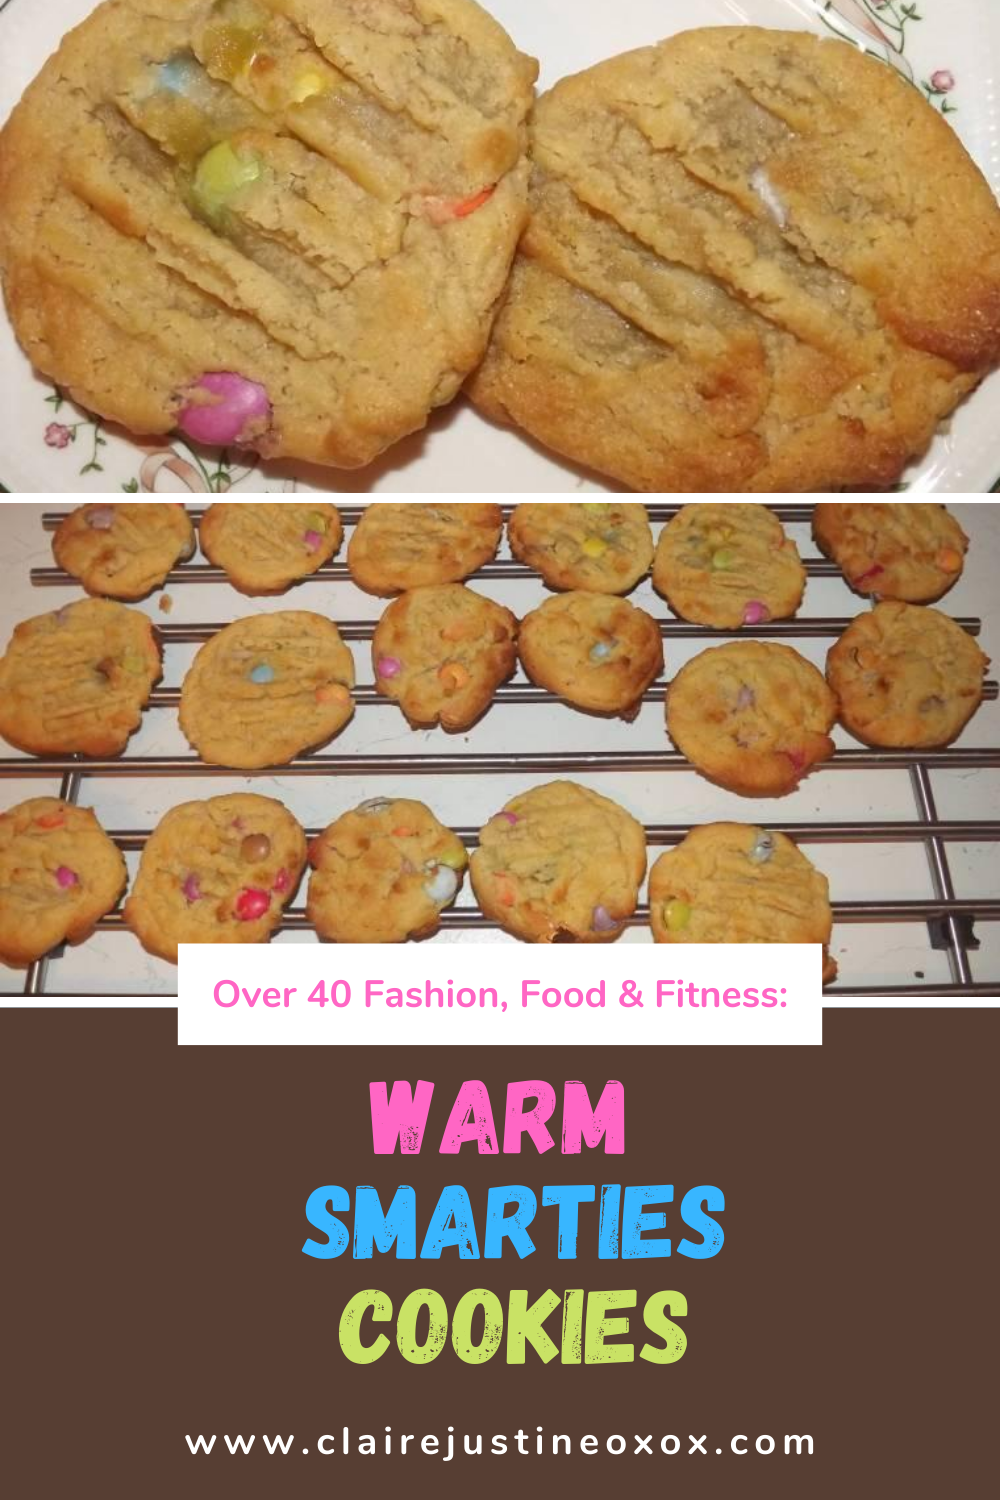 Warm Smarties Cookies